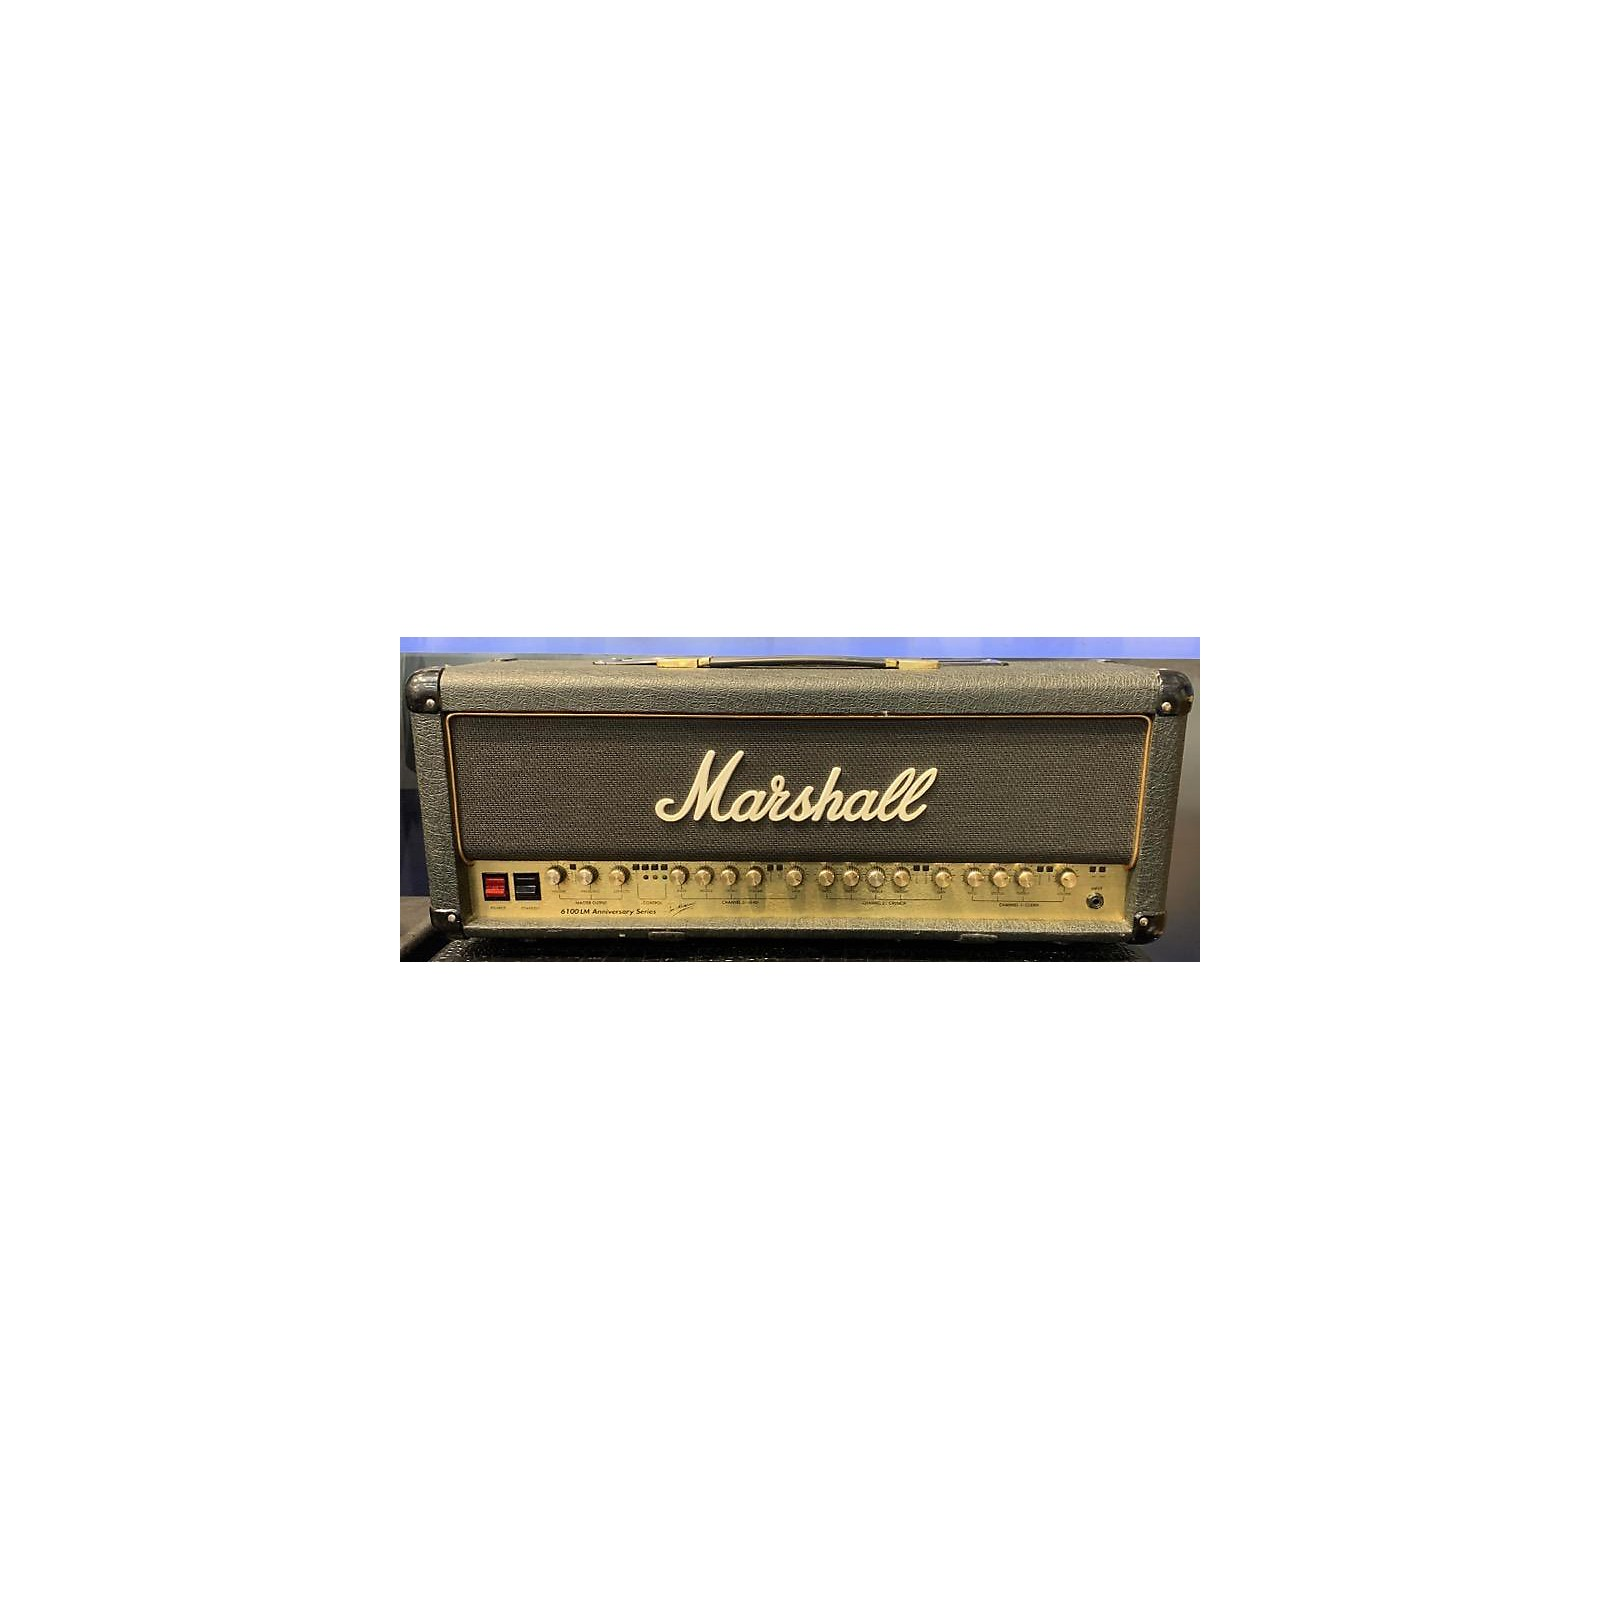 Marshall 1998 6100LM Anniversery Series Tube Guitar Amp Head